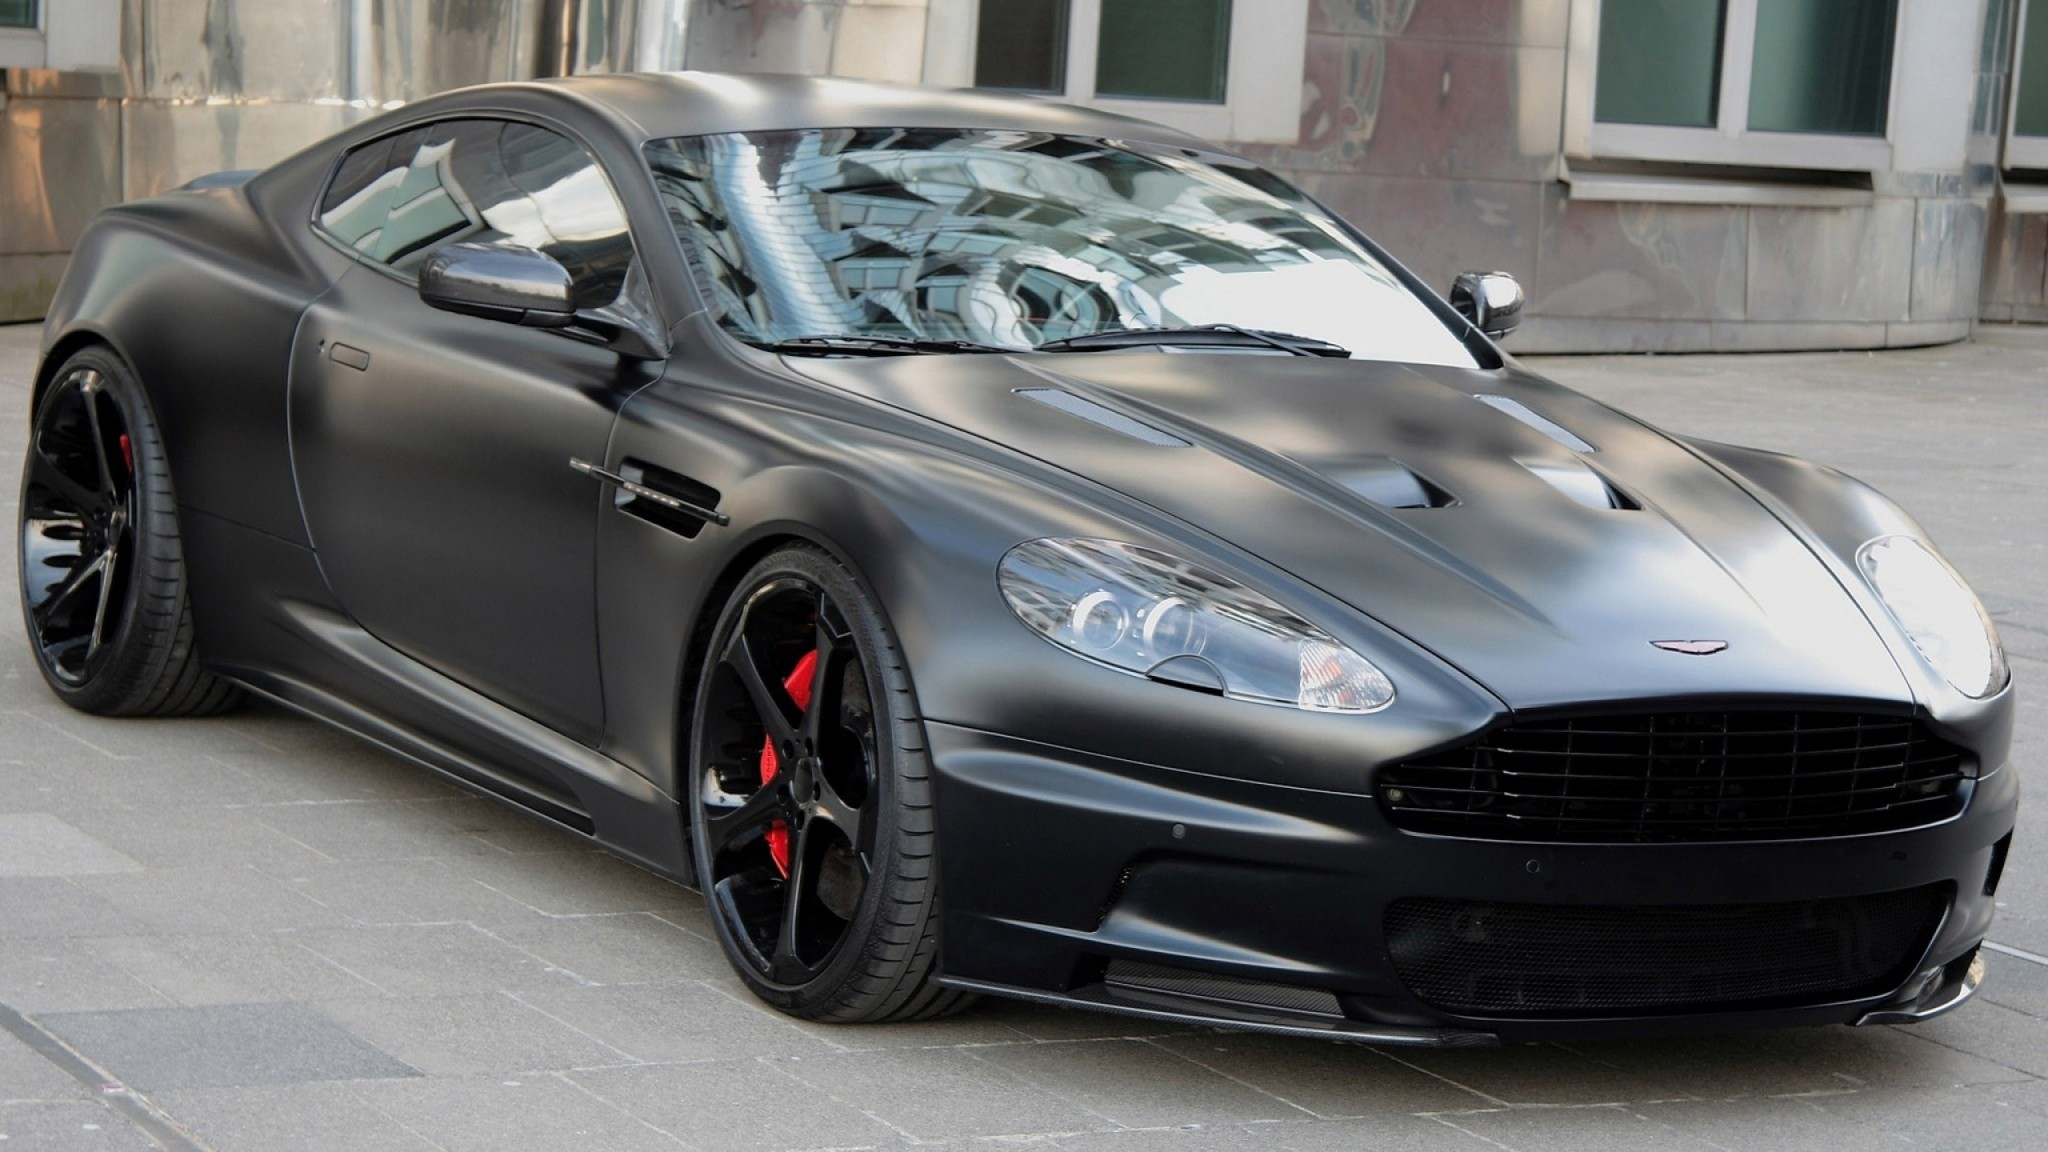 Black cars vehicles aston martin dbs    Shop HD Wallpaper